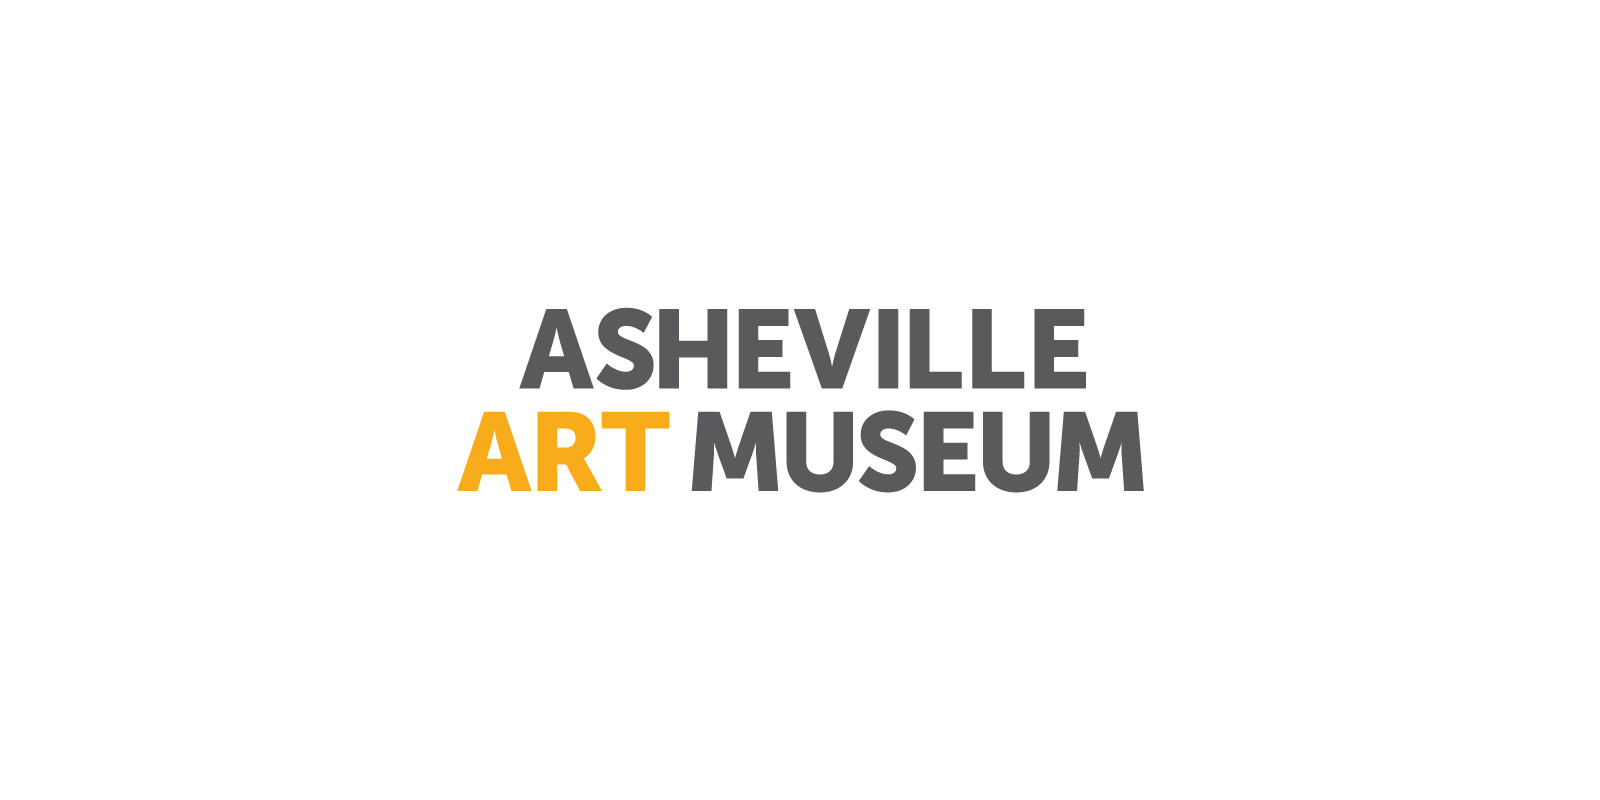 Asheville Art Museum logo in gray and yellow against a white background